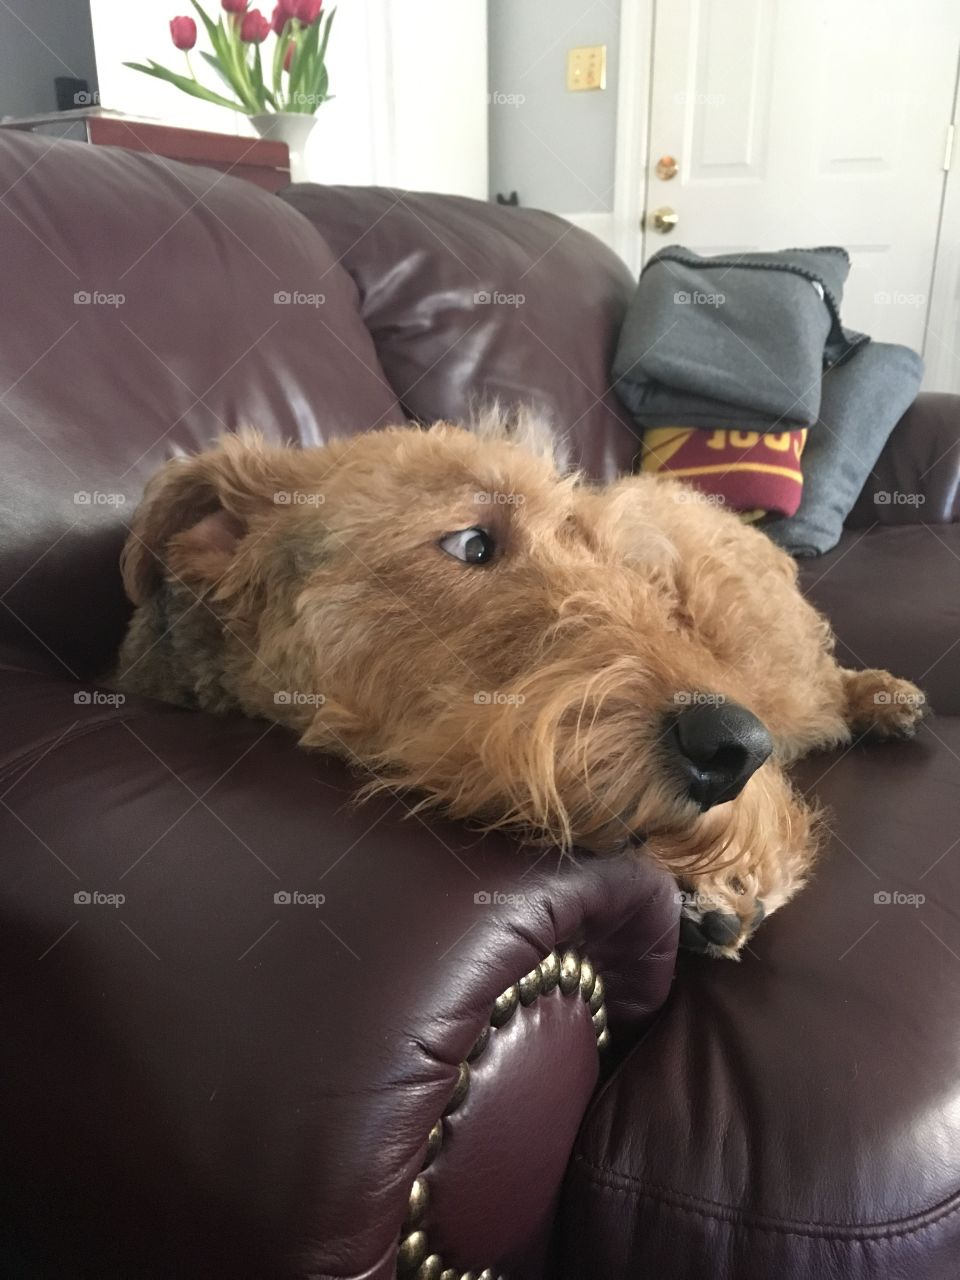 Airedale terrier on a couch, March 2017